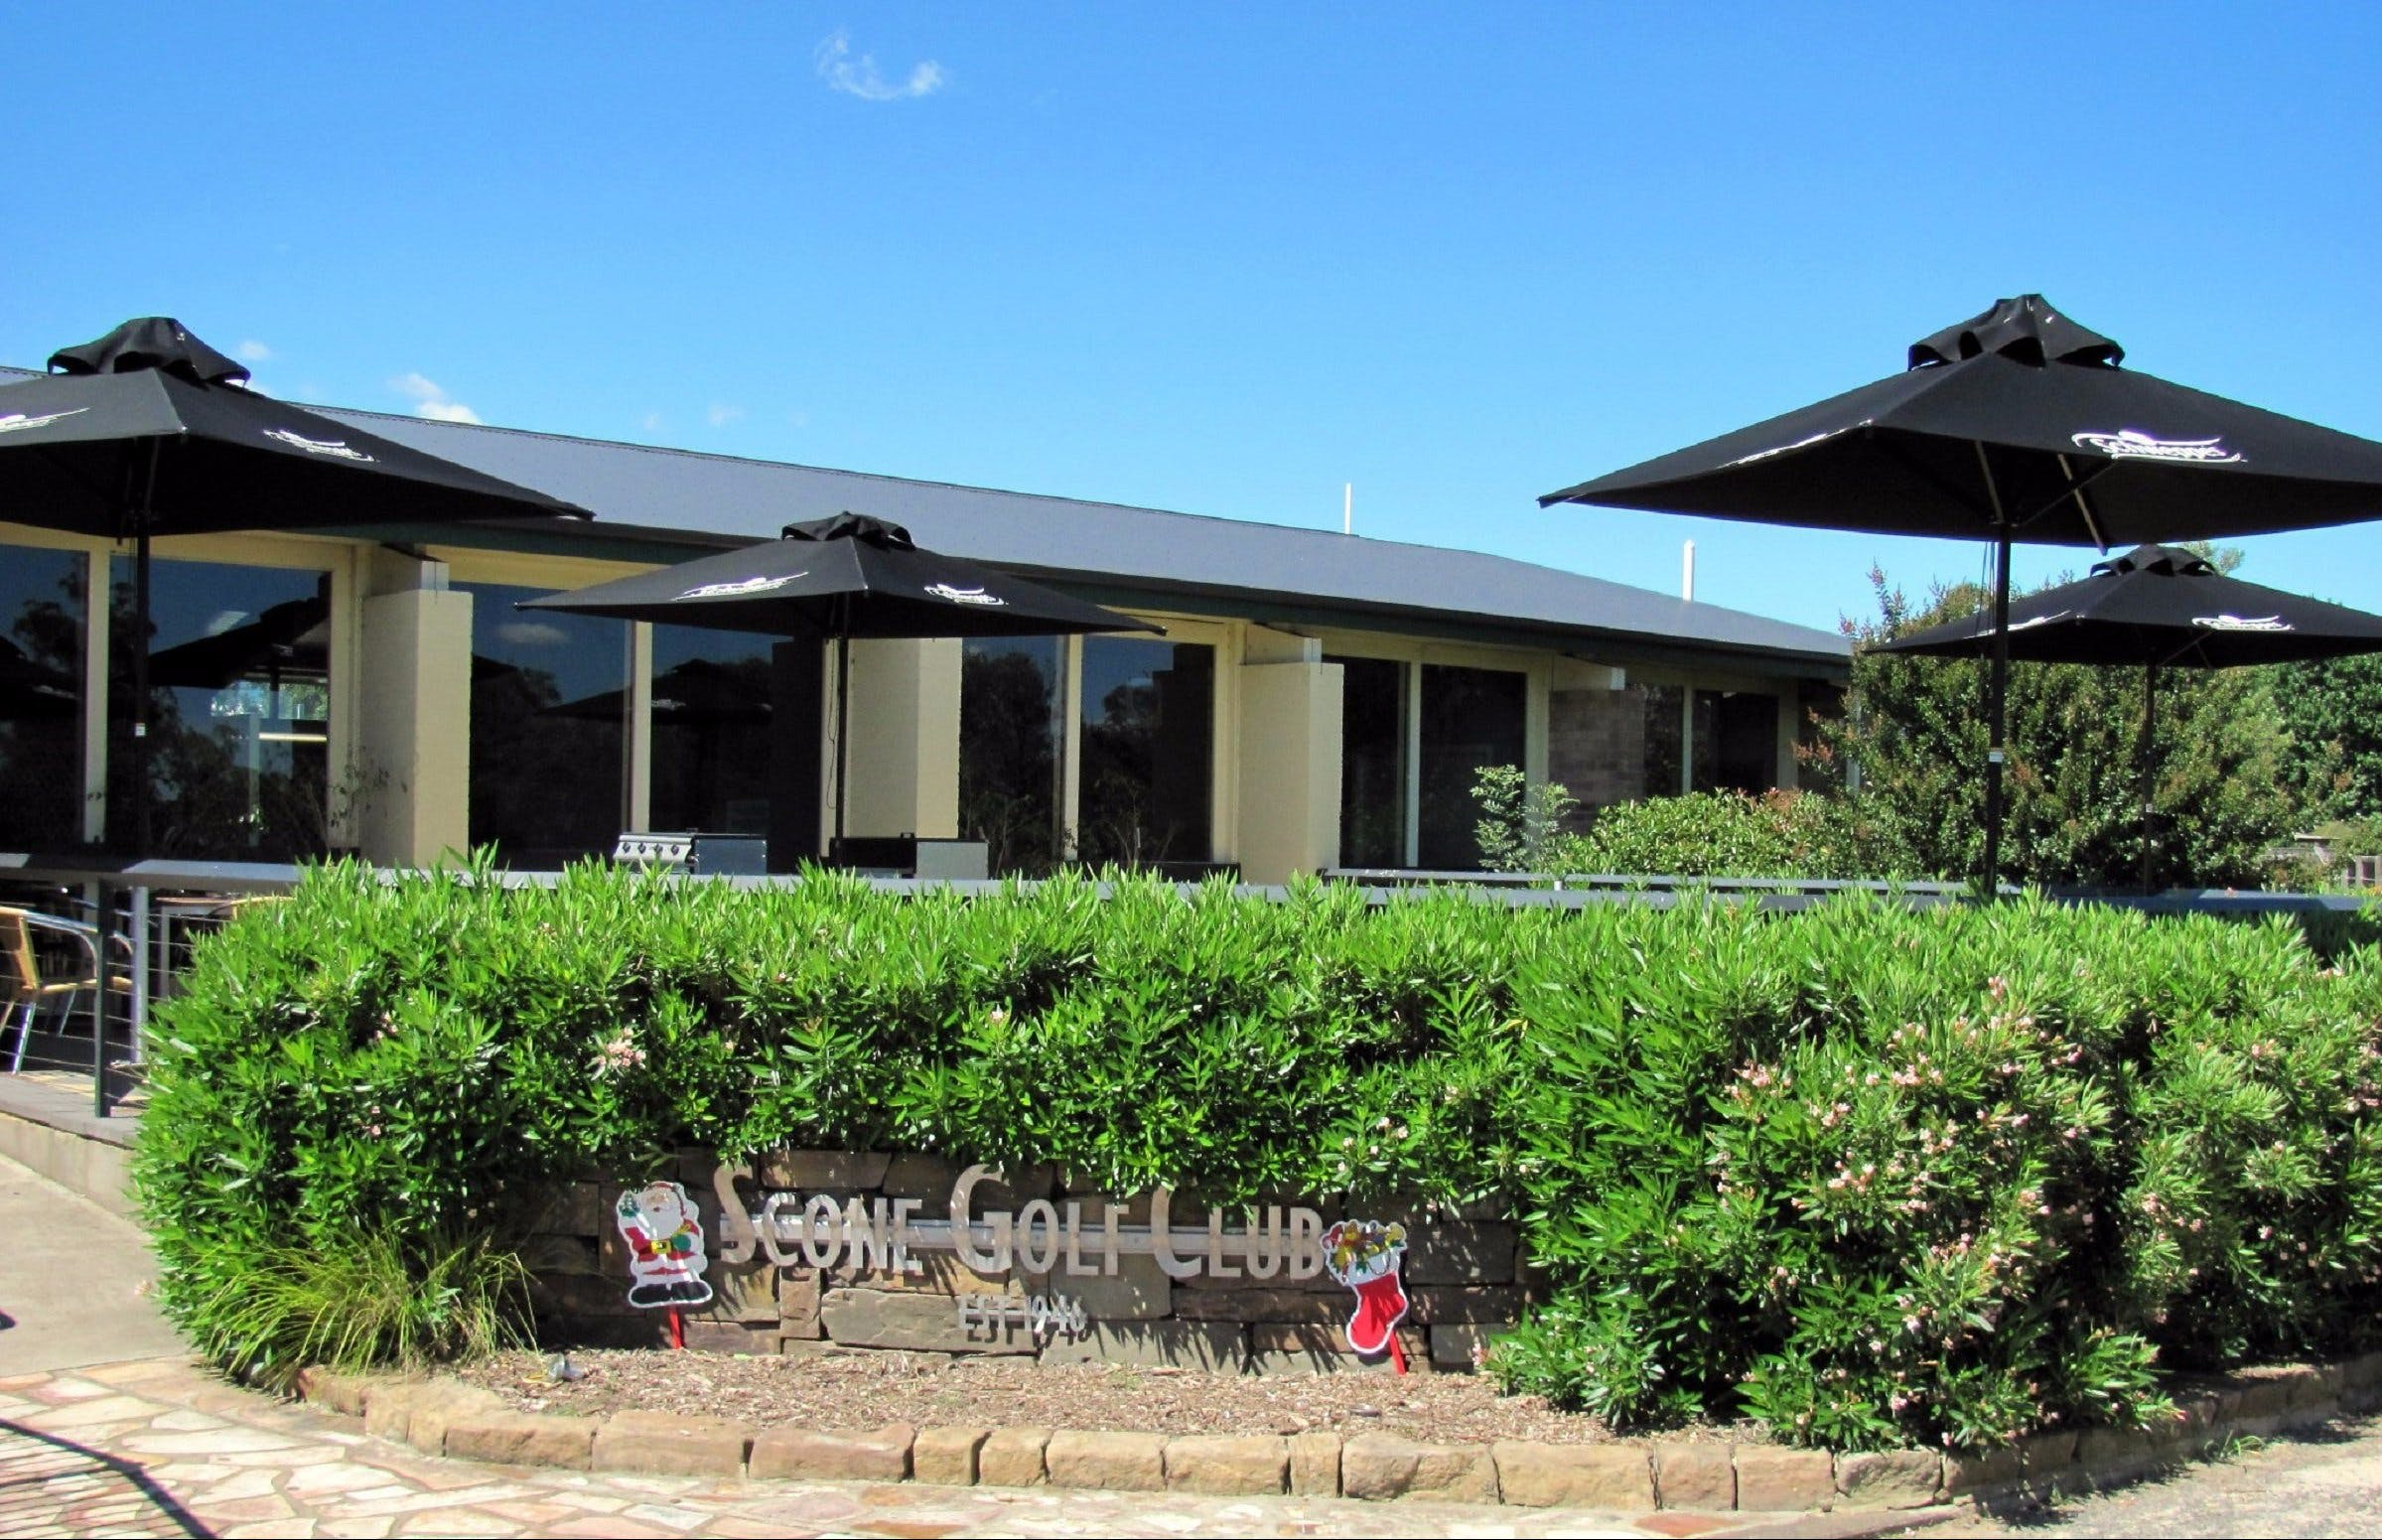 Scone Golf Club - VIC Tourism